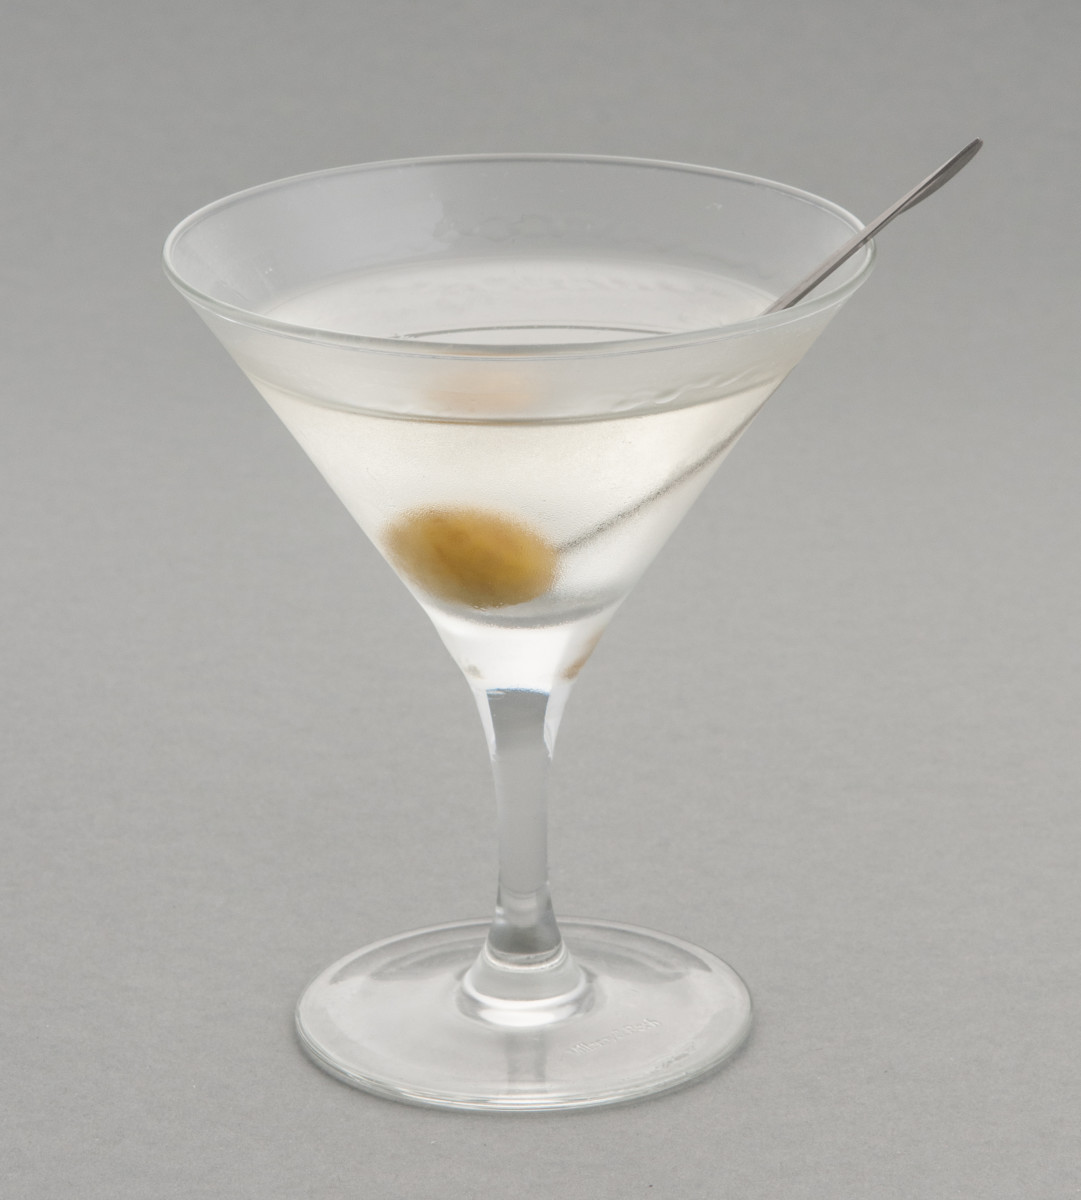 How to Mix a Great Martini